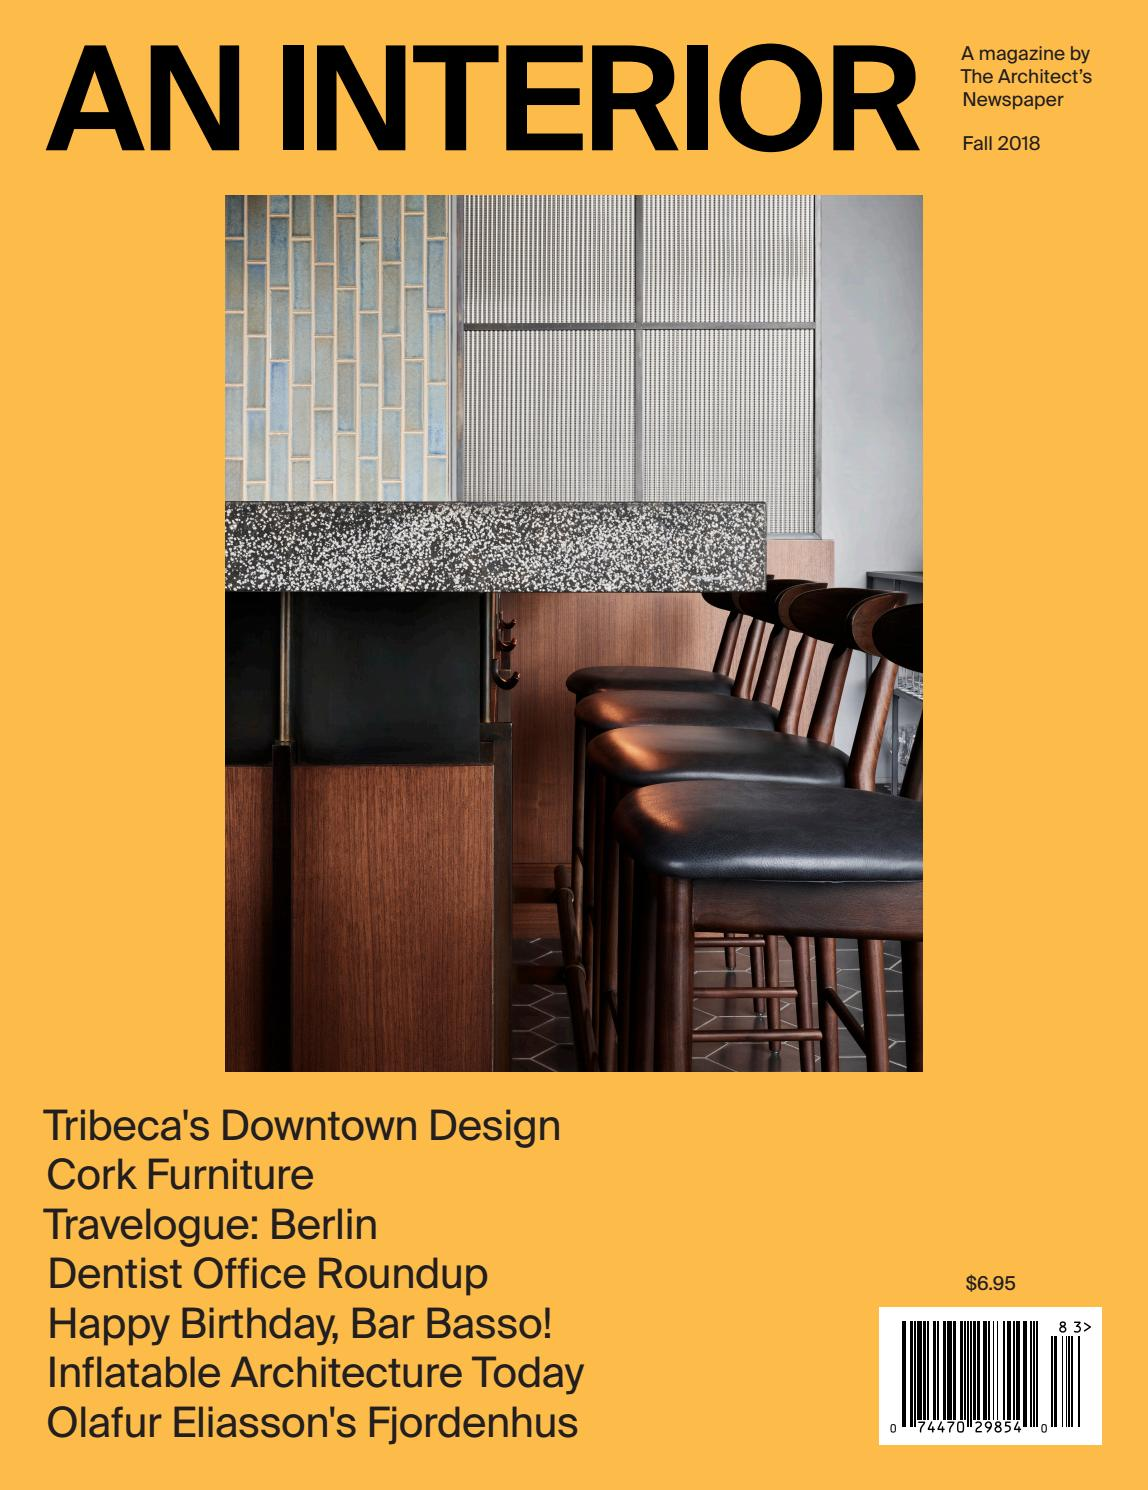 Küchen In U Form Bilder An Interior 11 By The Architect S Newspaper Issuu